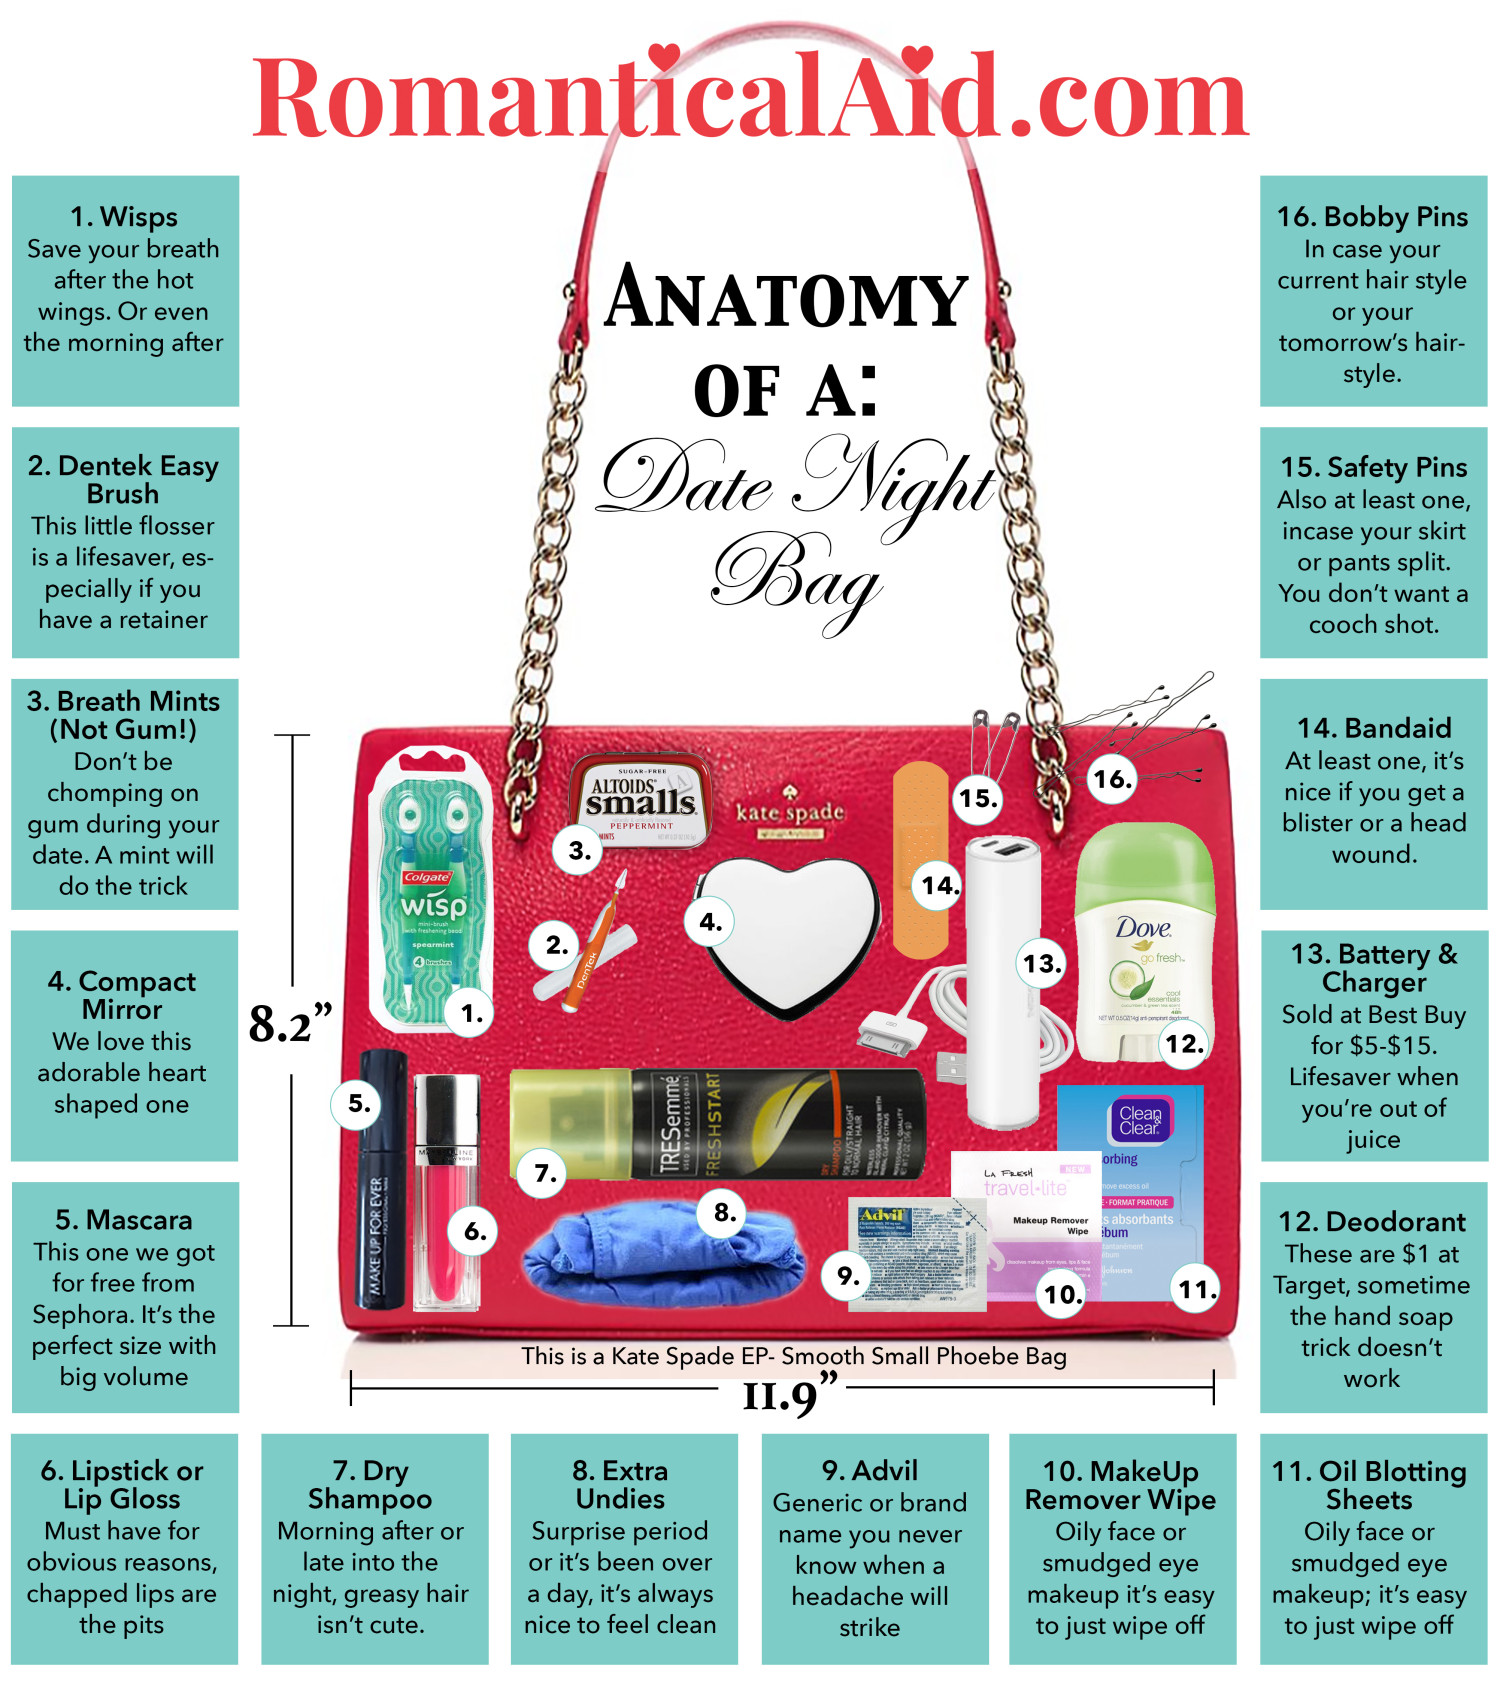 Anatomy of Date Night Bag InfoGraphic